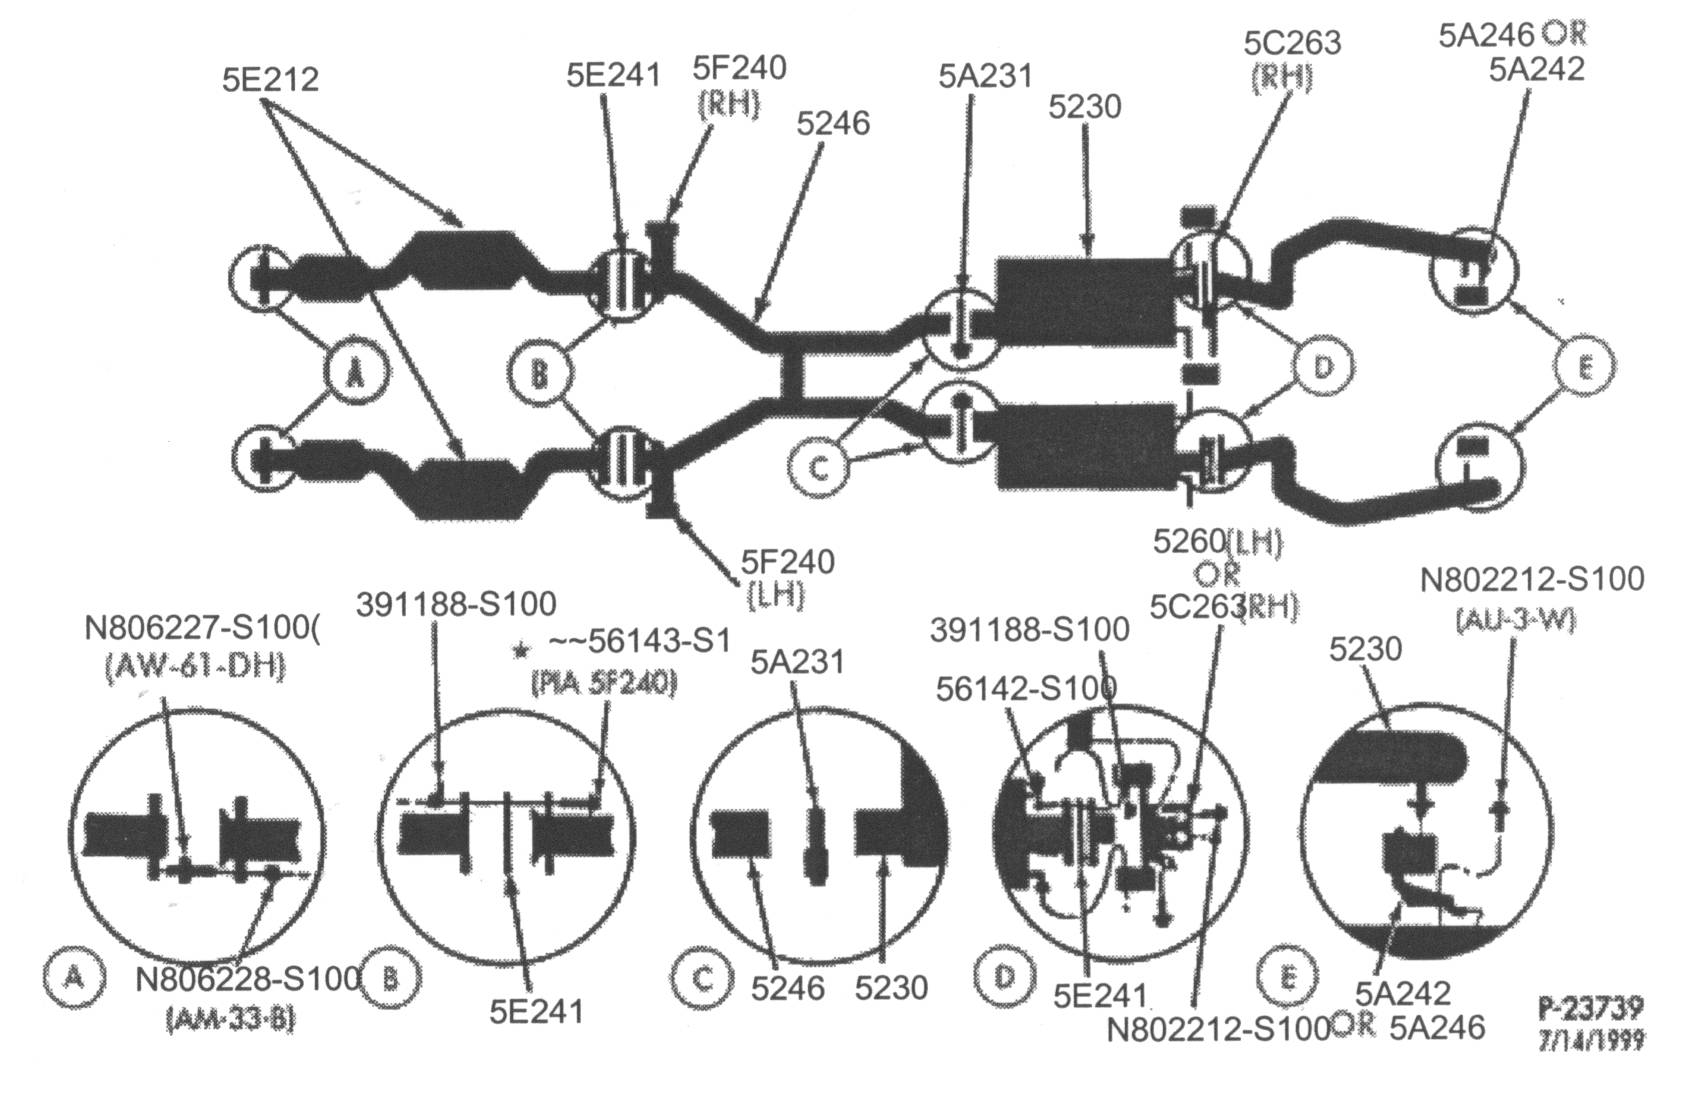 2003 ford escape exhaust system diagram wiring a boat trailer 2002 auto parts catalog and